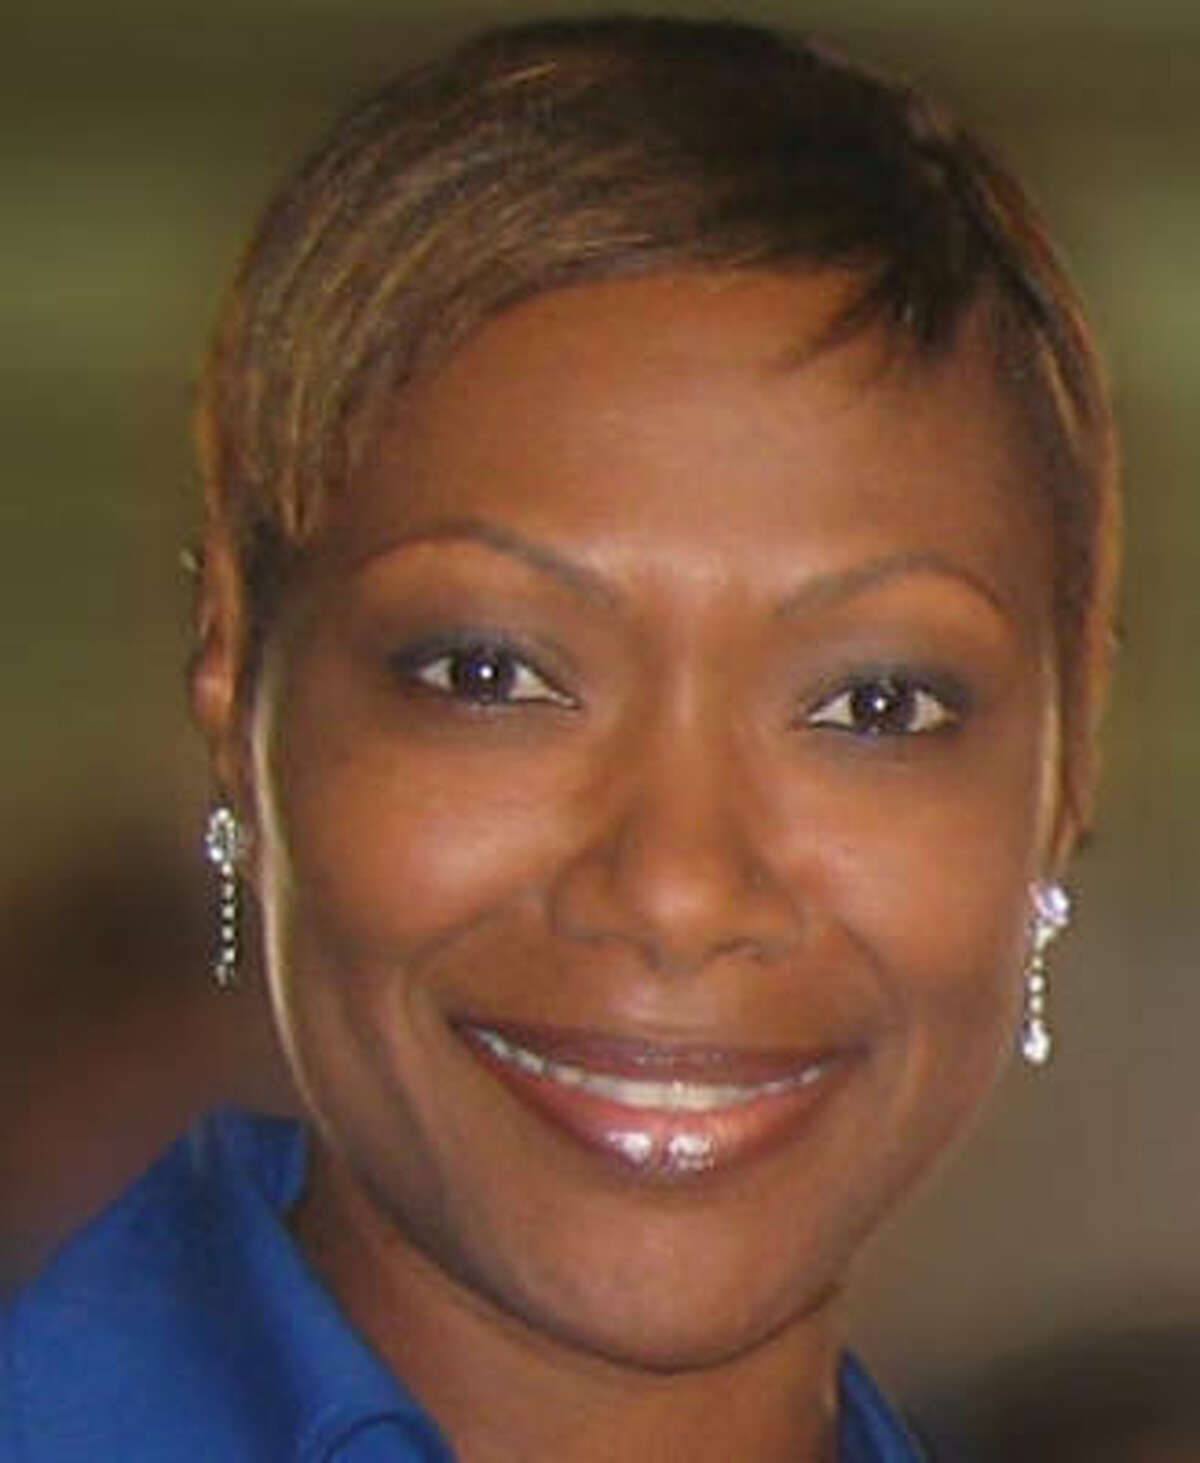 Democrat Jolanda Jones is running against Republican Jack Christie in her bid for re-election to an at-large seat.